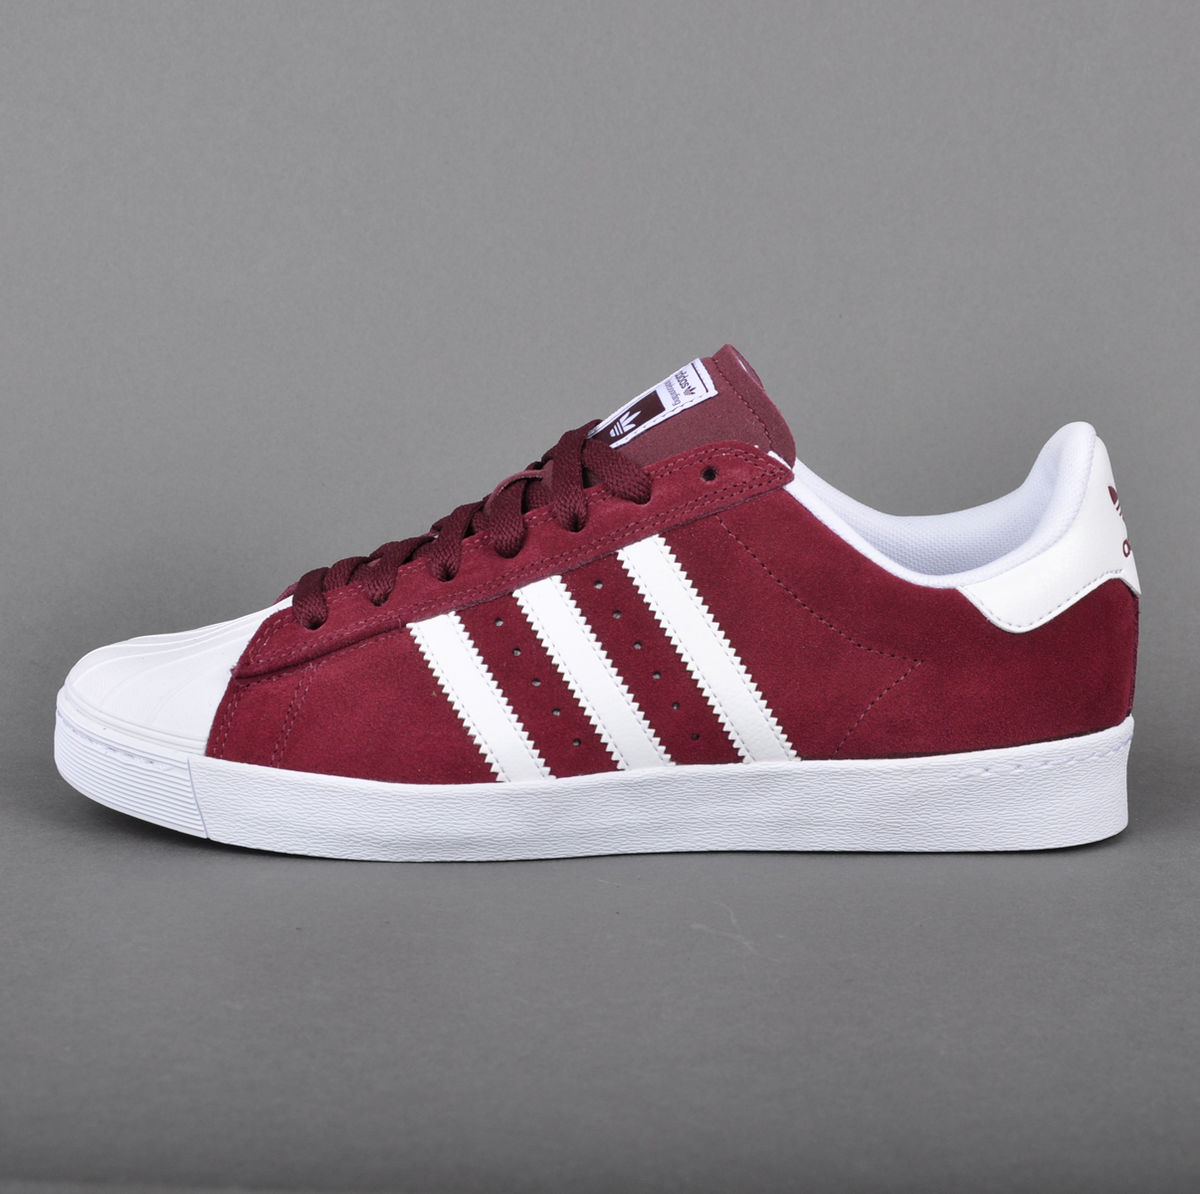 0e6bb682a2c16 Buy Cheap Adidas Superstar Vulc ADV Shoes Sale Online 2018